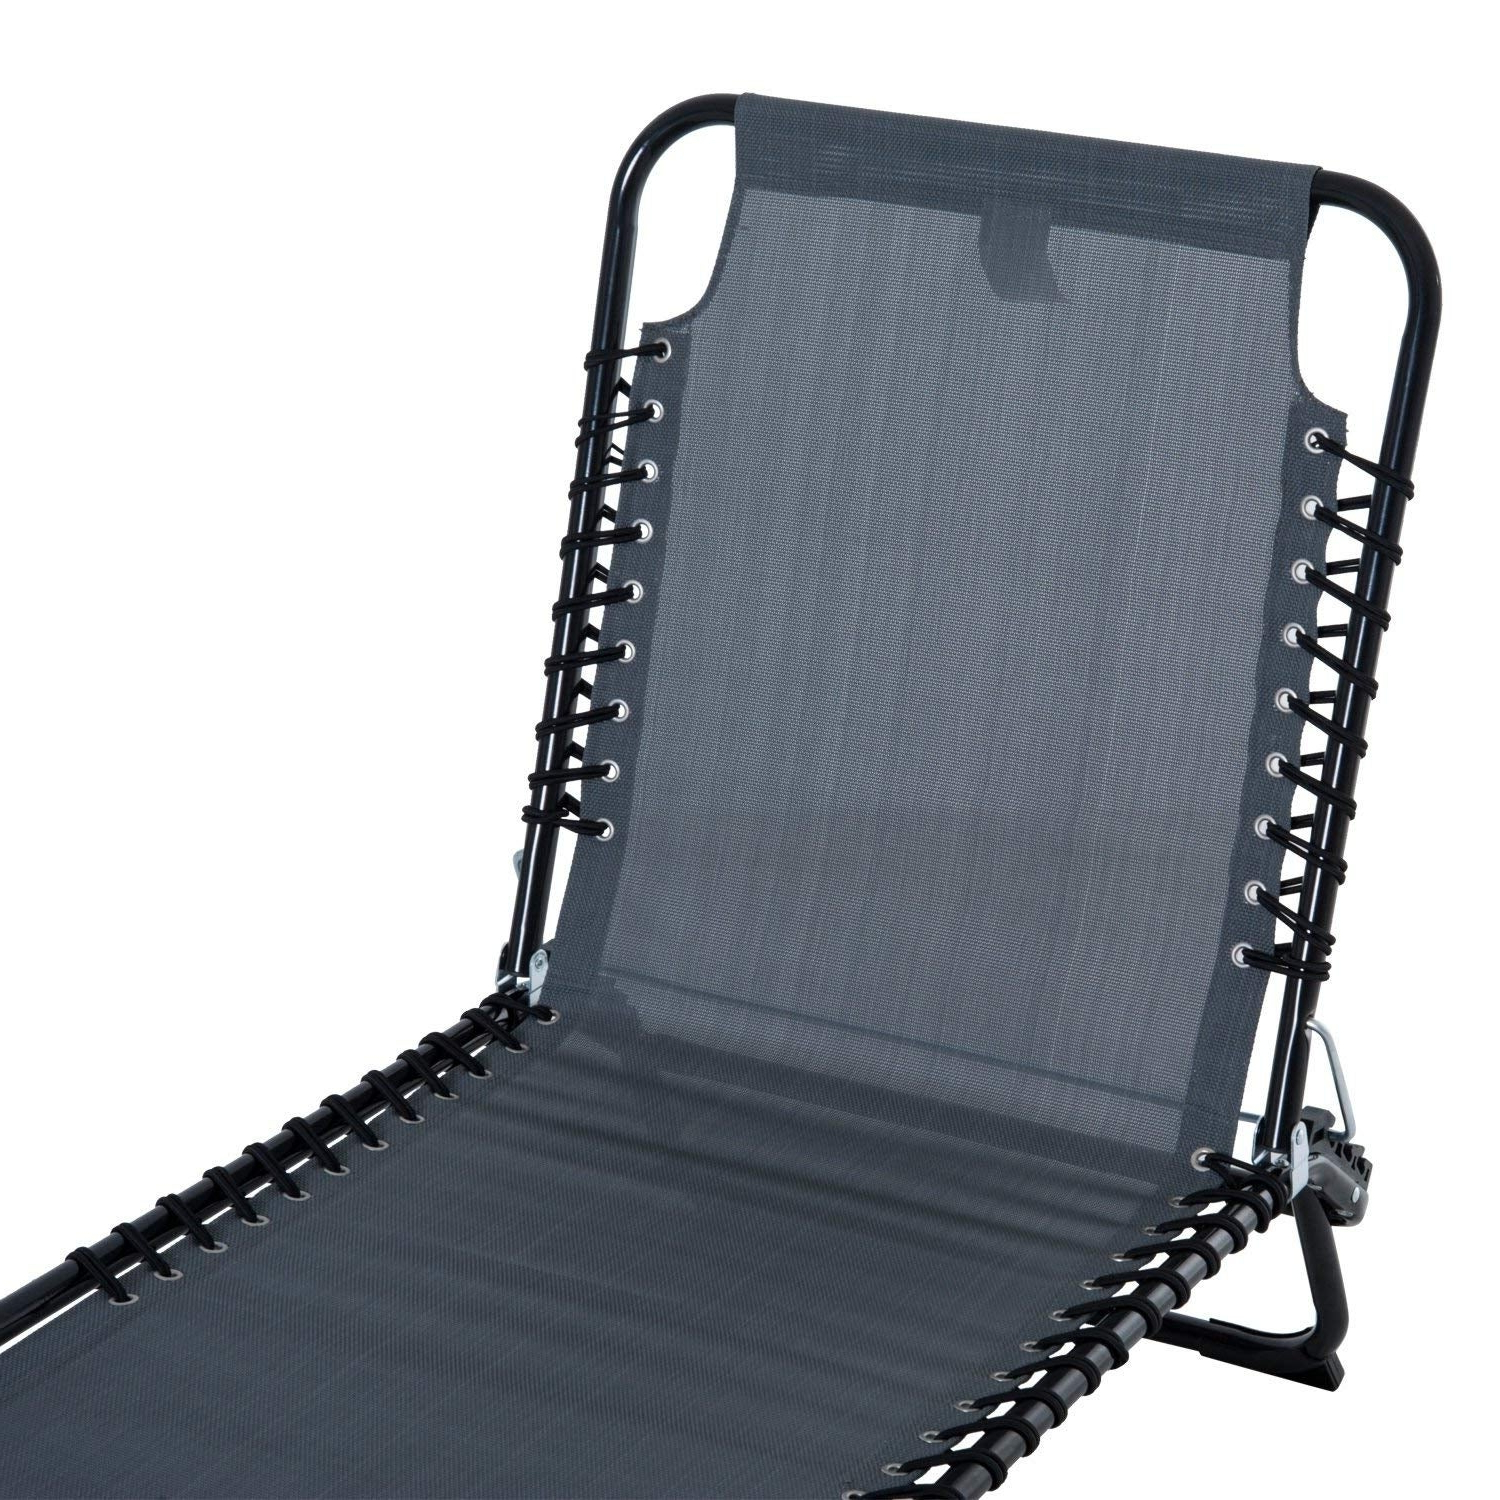 Current Portable Reclining Beach Chaise Lounge Folding Chairs Within Outsunny 3 Position Portable Reclining Beach Chaise Lounge Folding Chair Outdoor Patio – Grey (View 11 of 25)